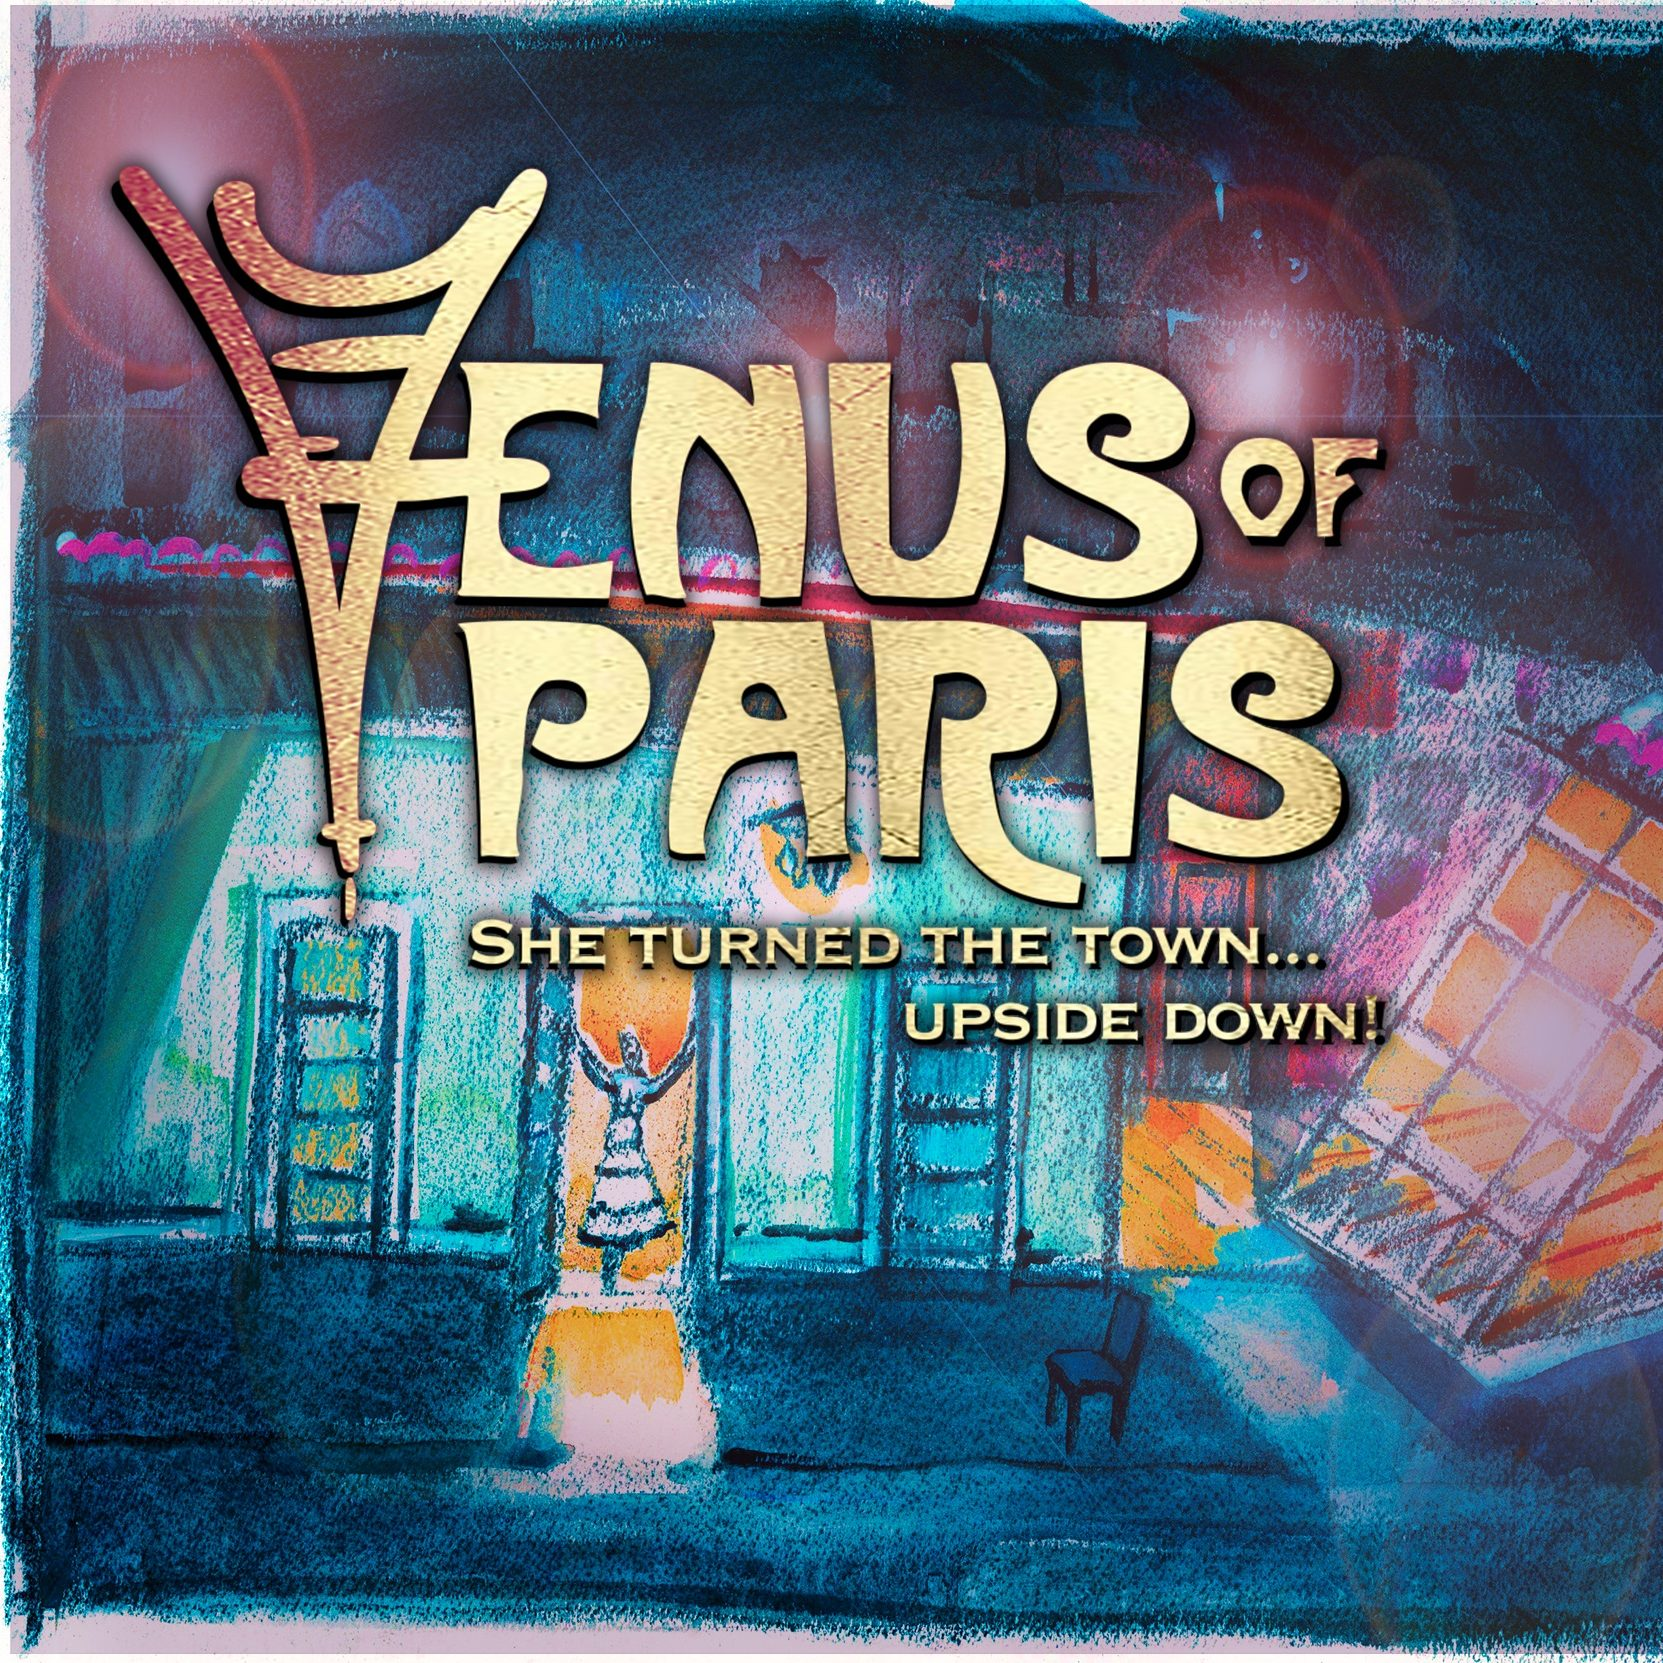 Venus-of-Paris